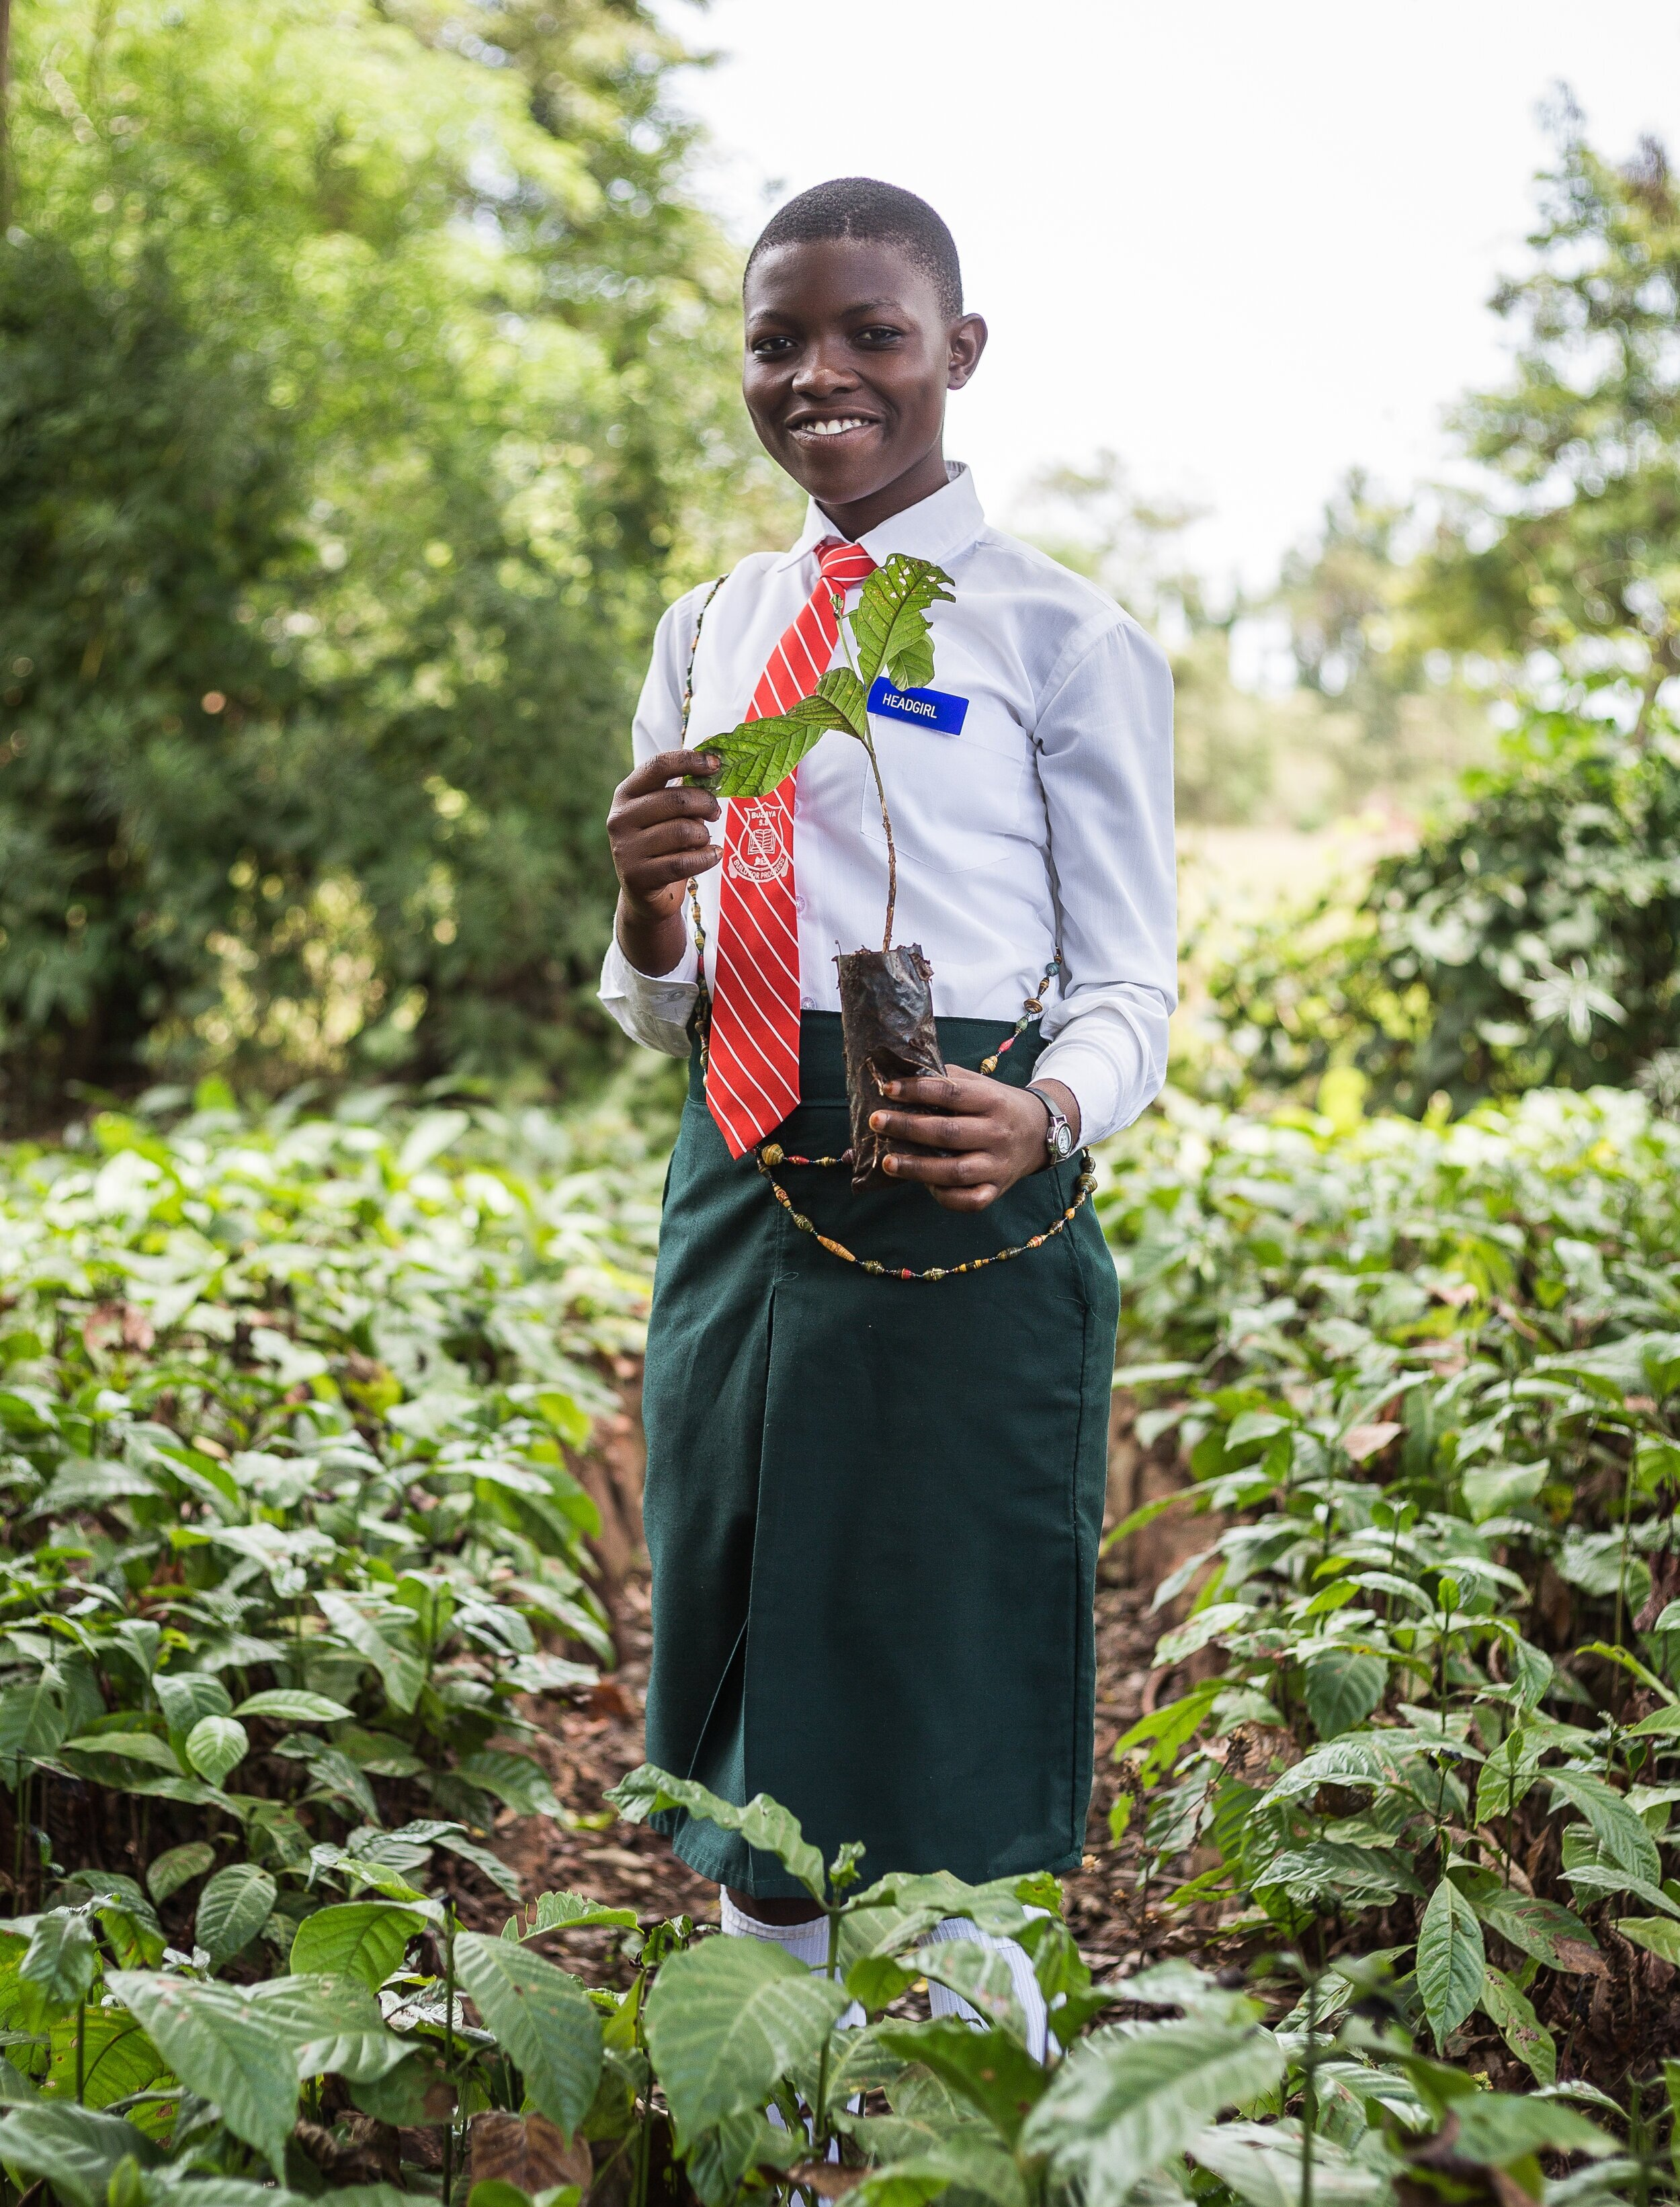 In high school, Barbara starts a small business and earns more than double the income of her peers. - Female Educate! participants earn 244% more income than their peers towards the end of secondary school, both genders earning 95% more than their peers not in the program.*